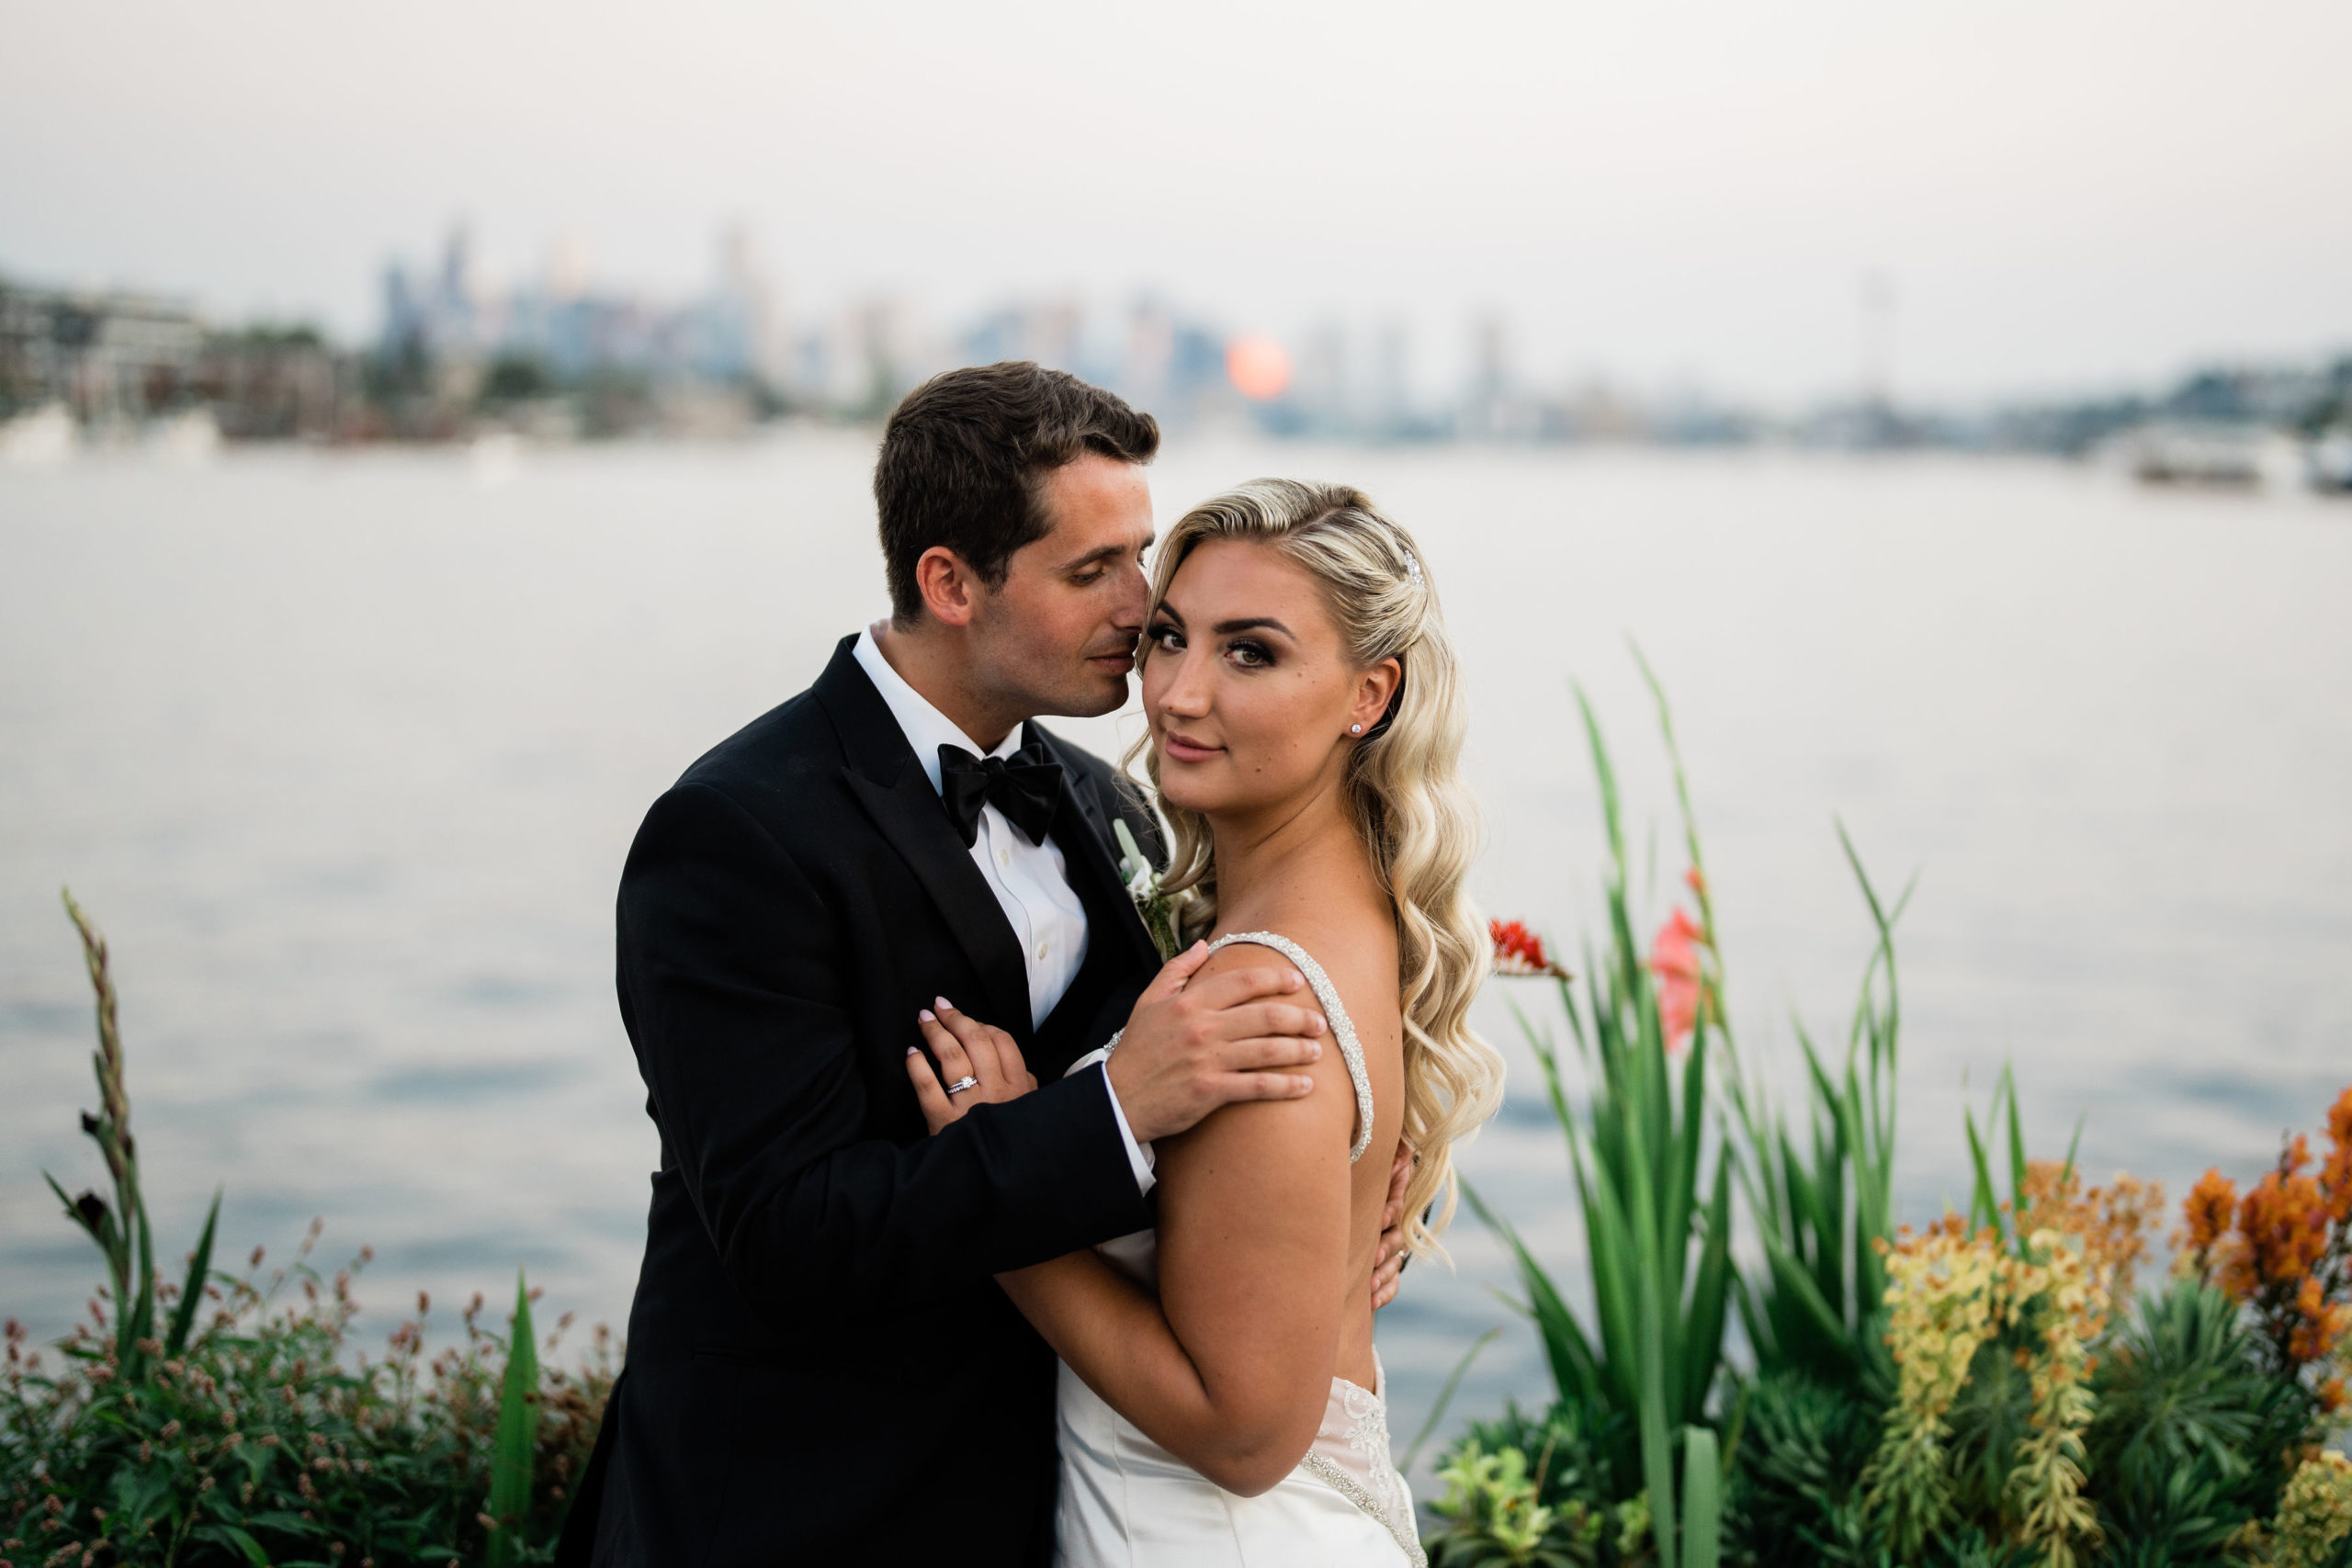 romantic and intimate photos